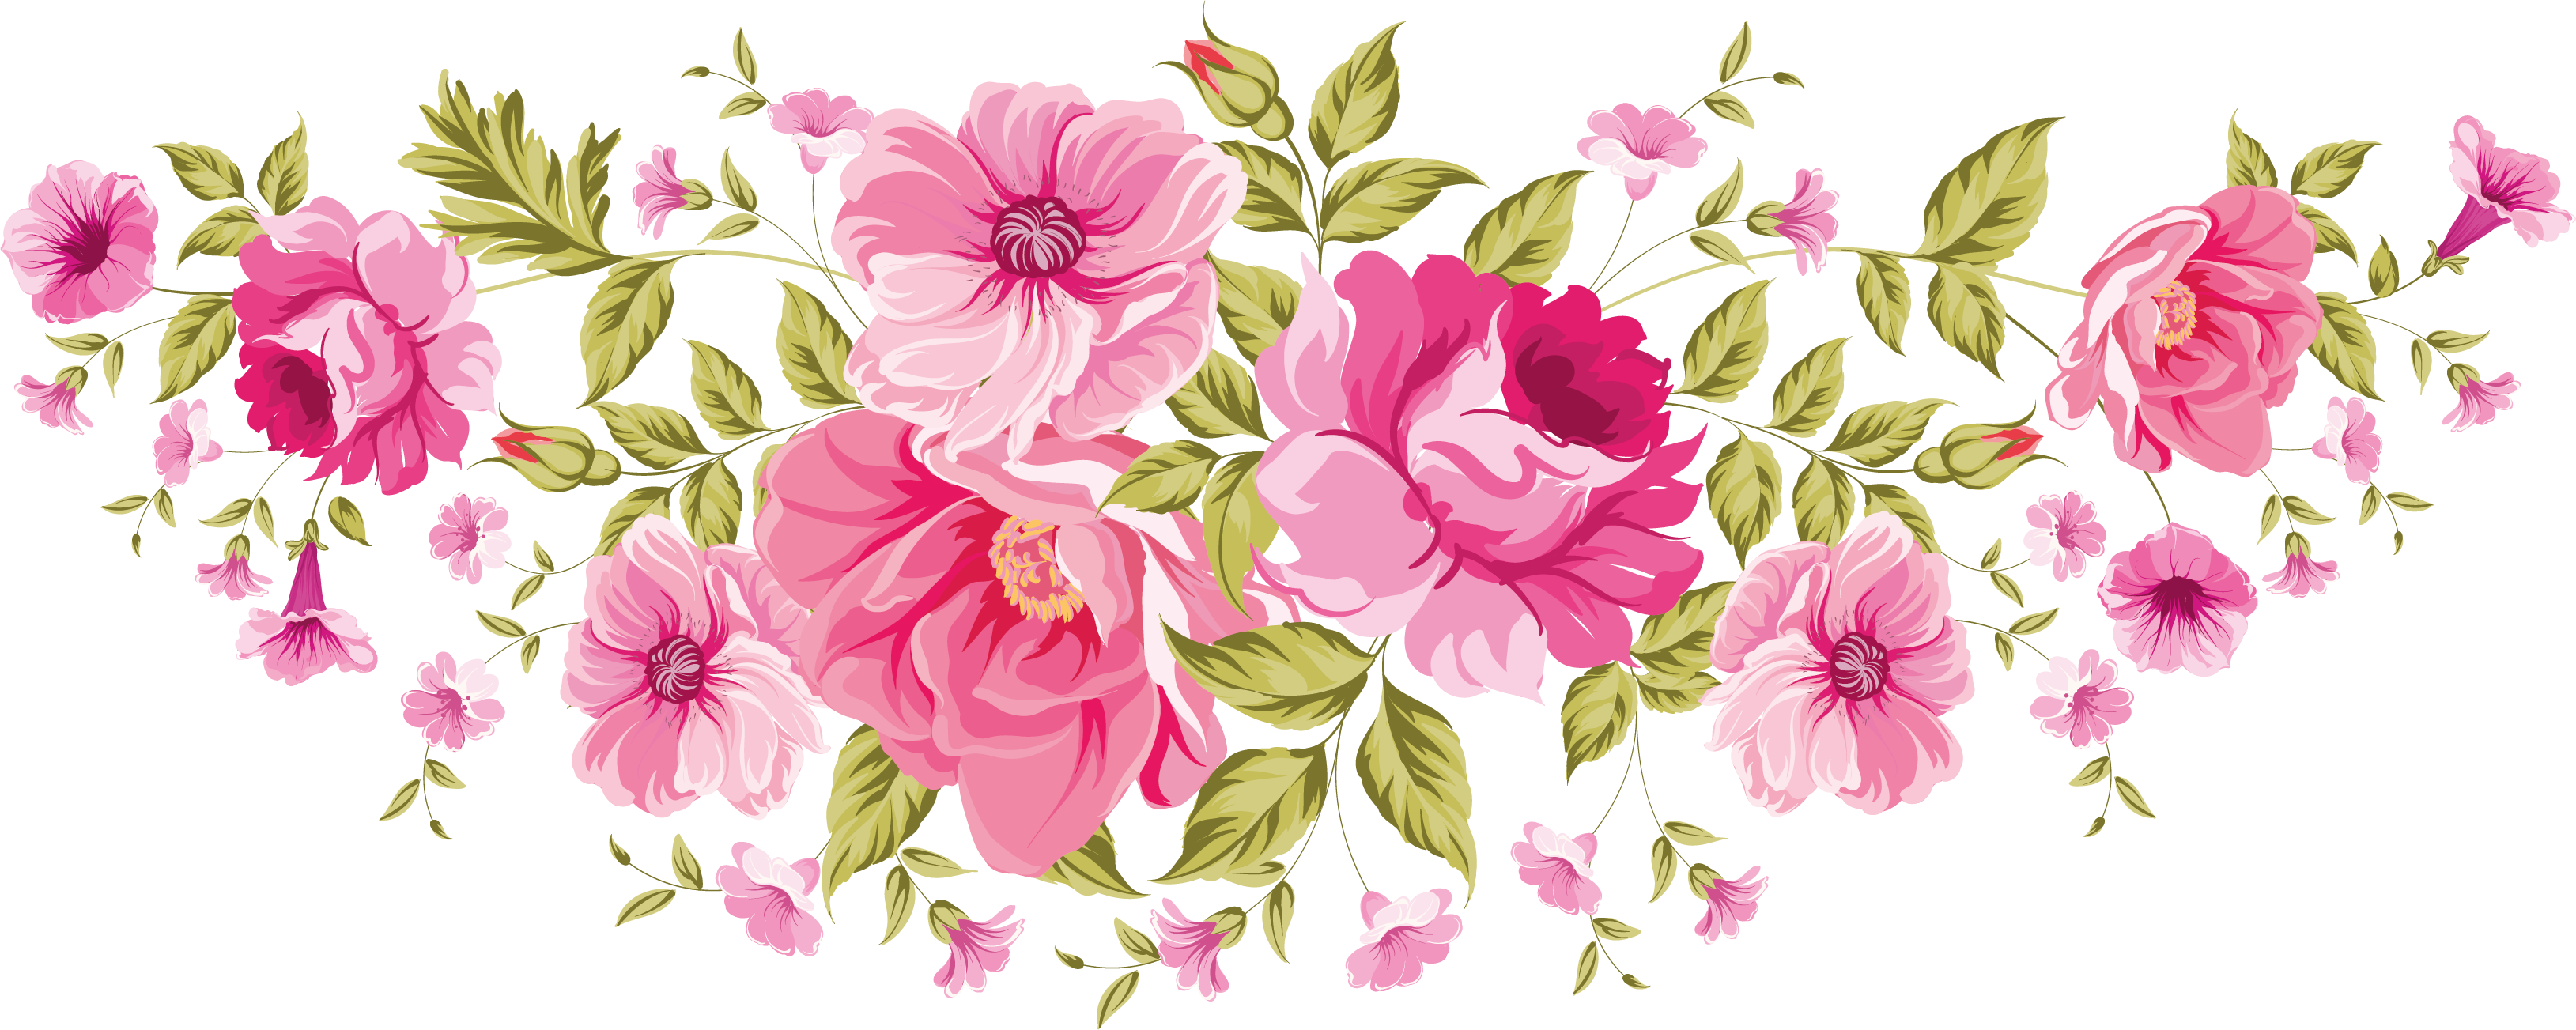 Flower .png. Flowers png xxl decoupage